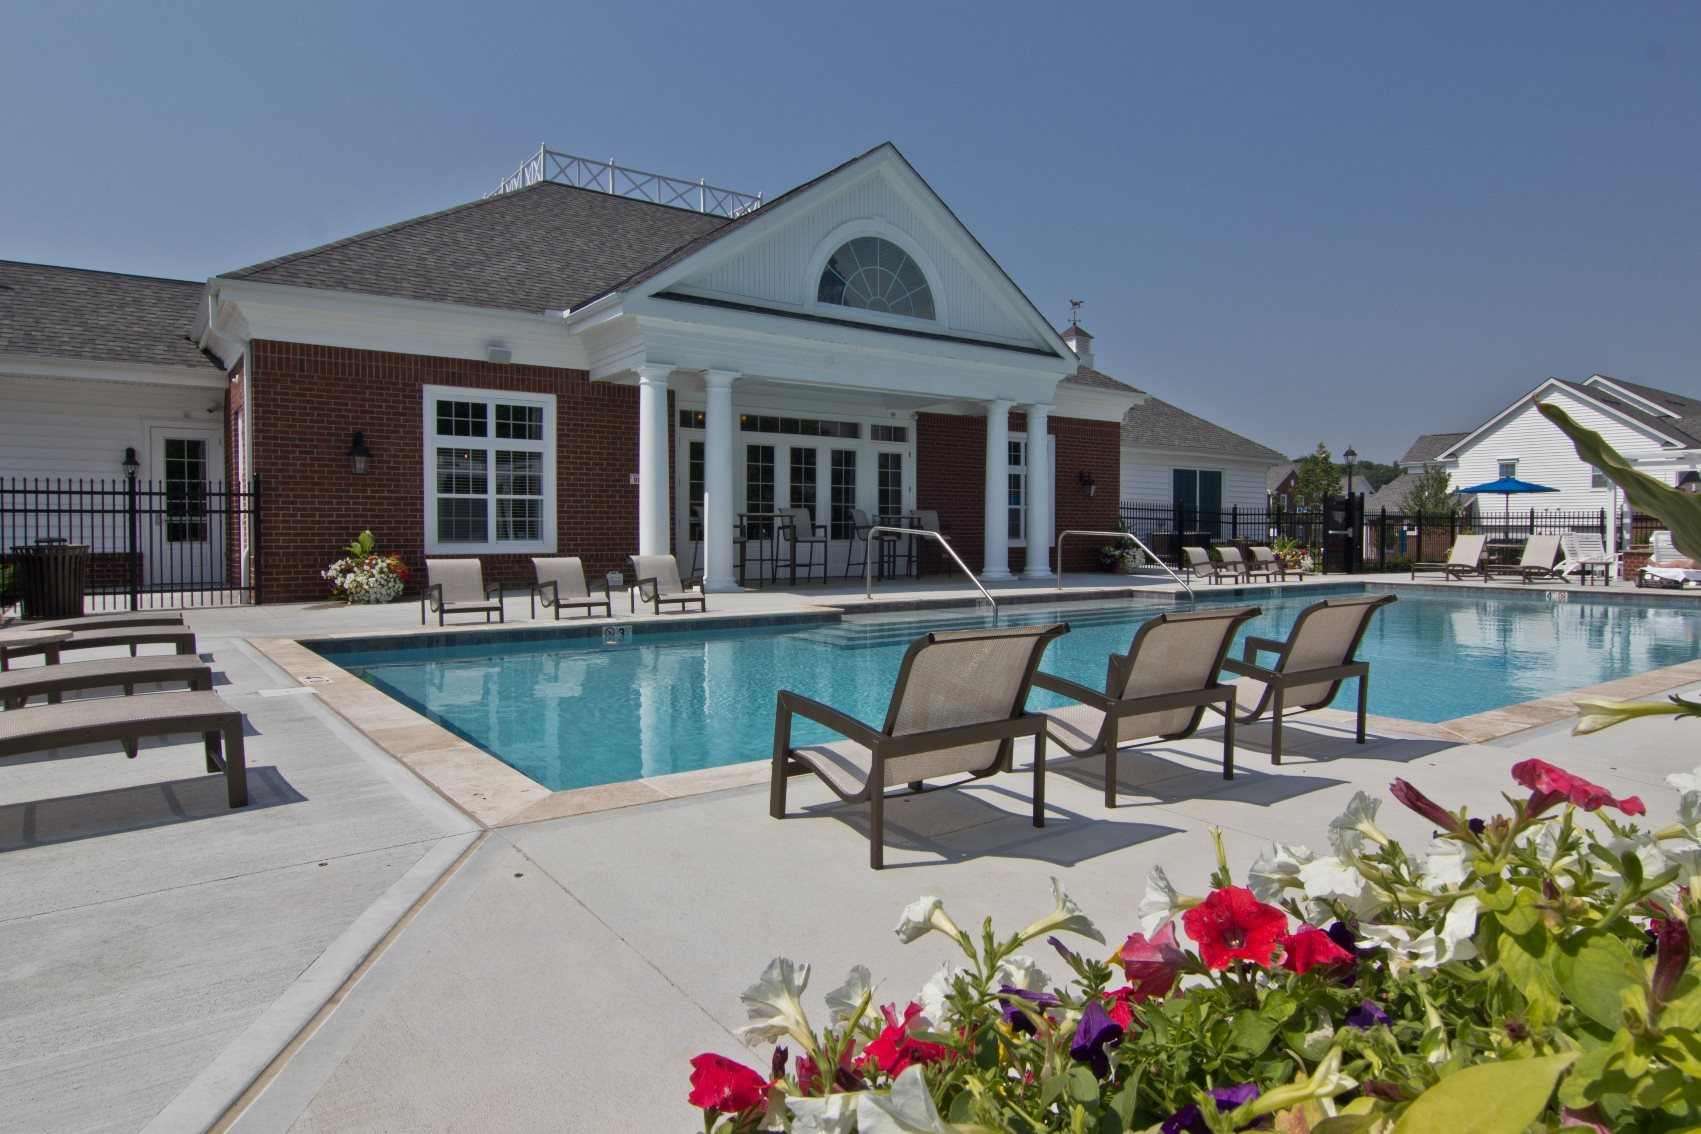 Pool and chairs behind clubhouse